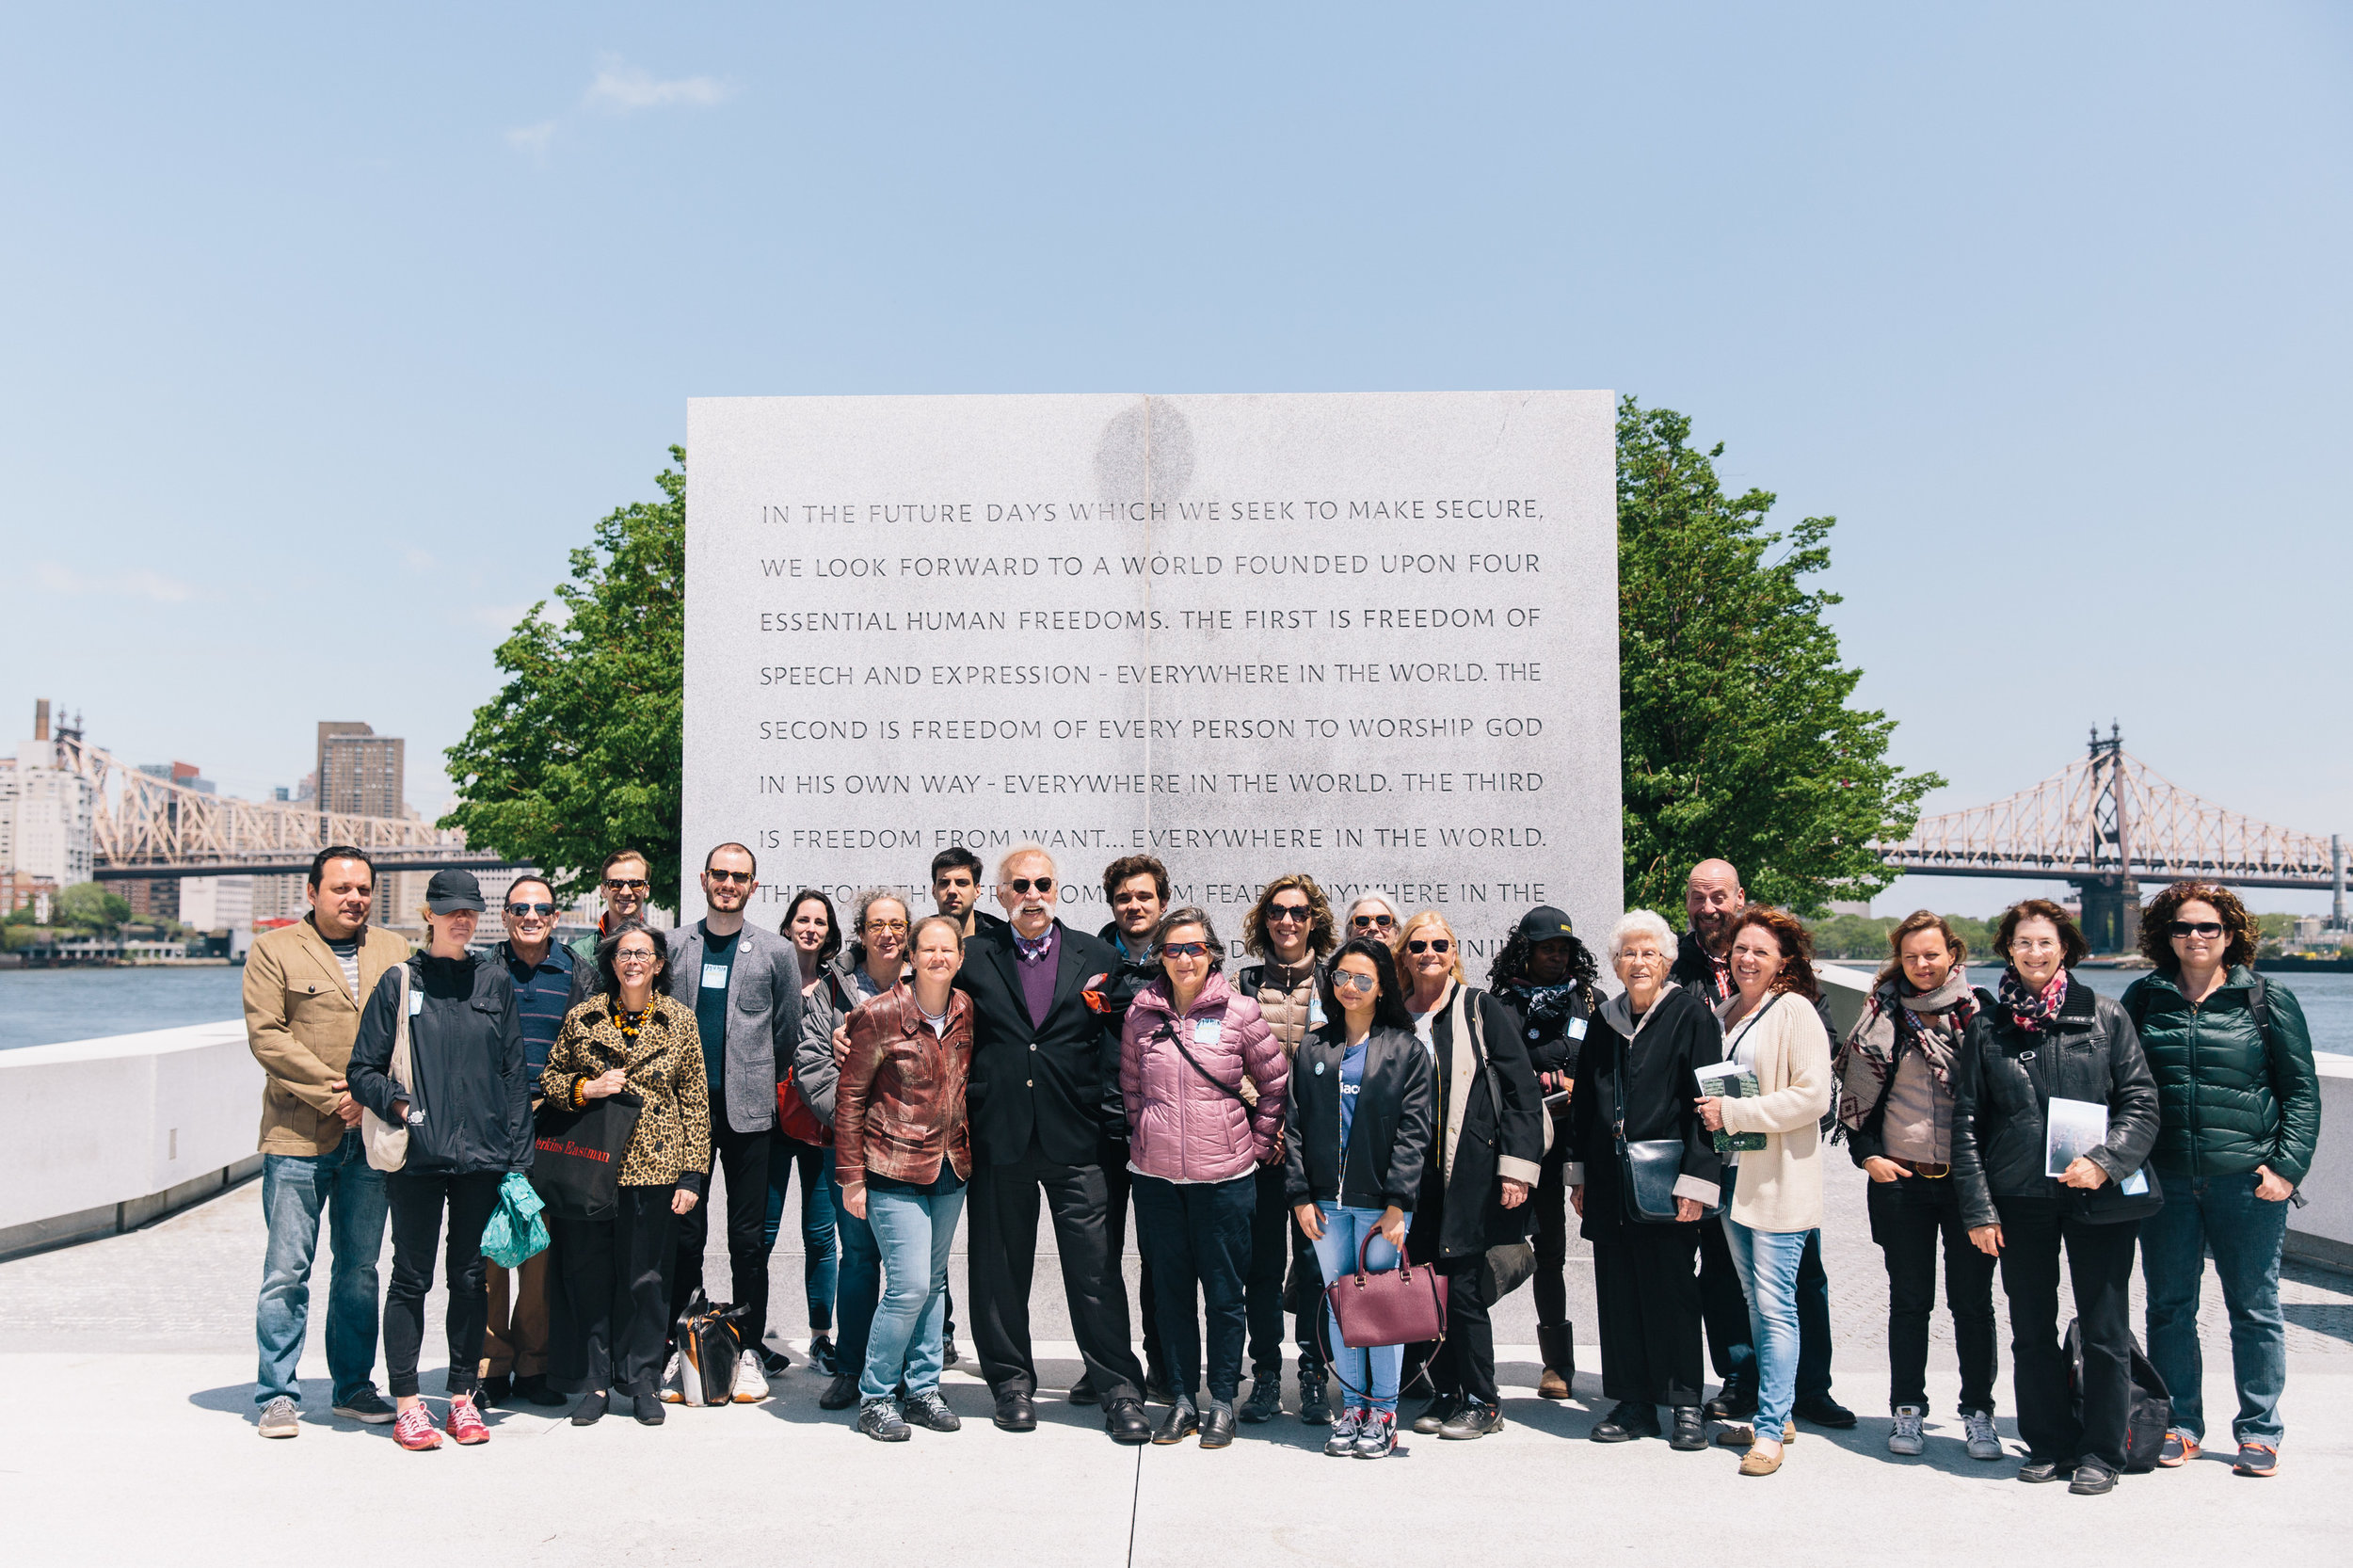 Jane's Walk 2017 participants at FDR Four Freedoms Park.  Photo Credit: Rowa Lee.